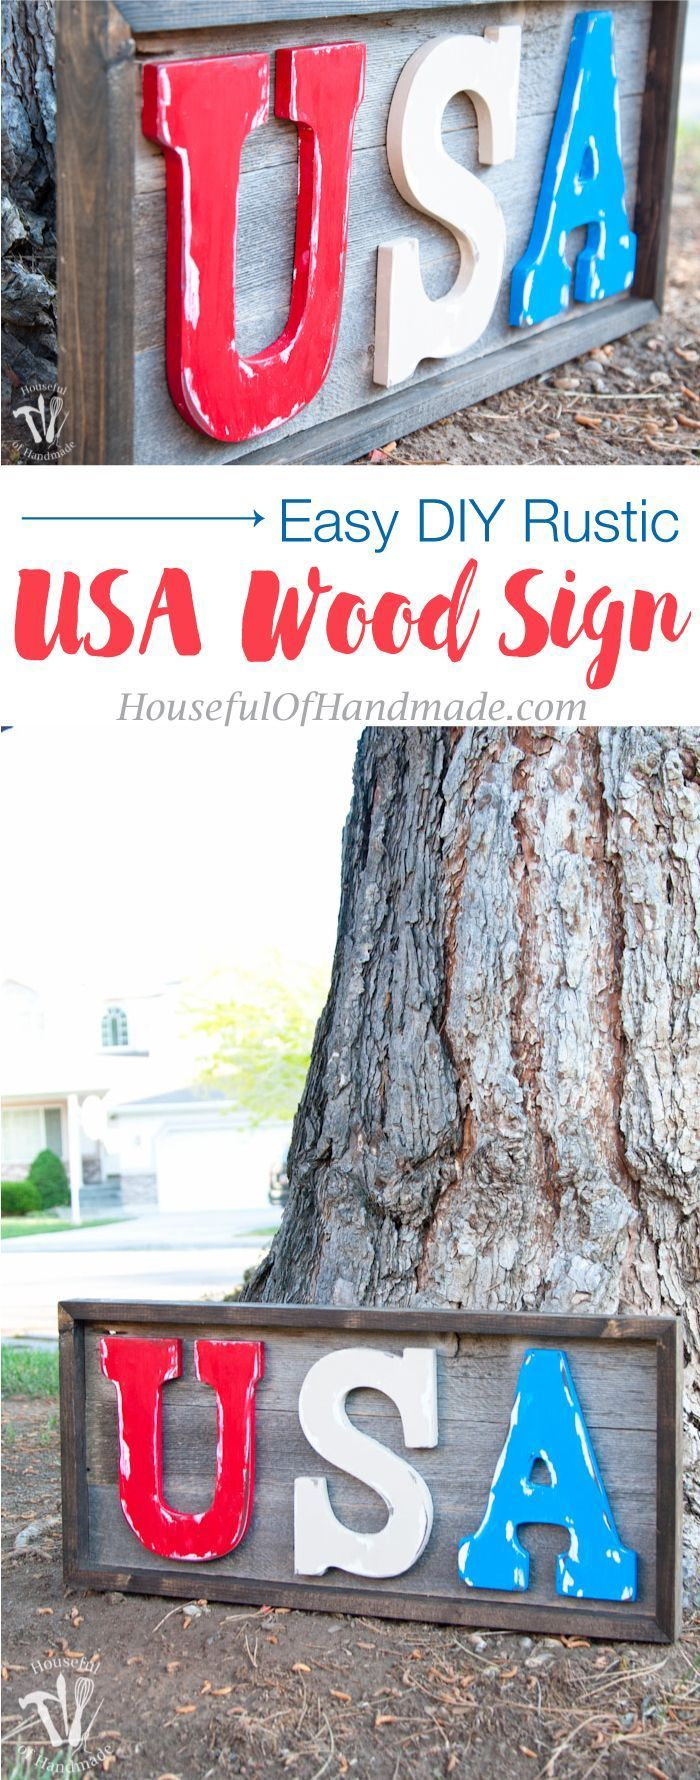 I love patriotic decorations for summer! You can make this easy DIY rustic USA wood sign for your 4th of July decor in just a few hours.  Tutorial from http://Housefulofhandmade.com